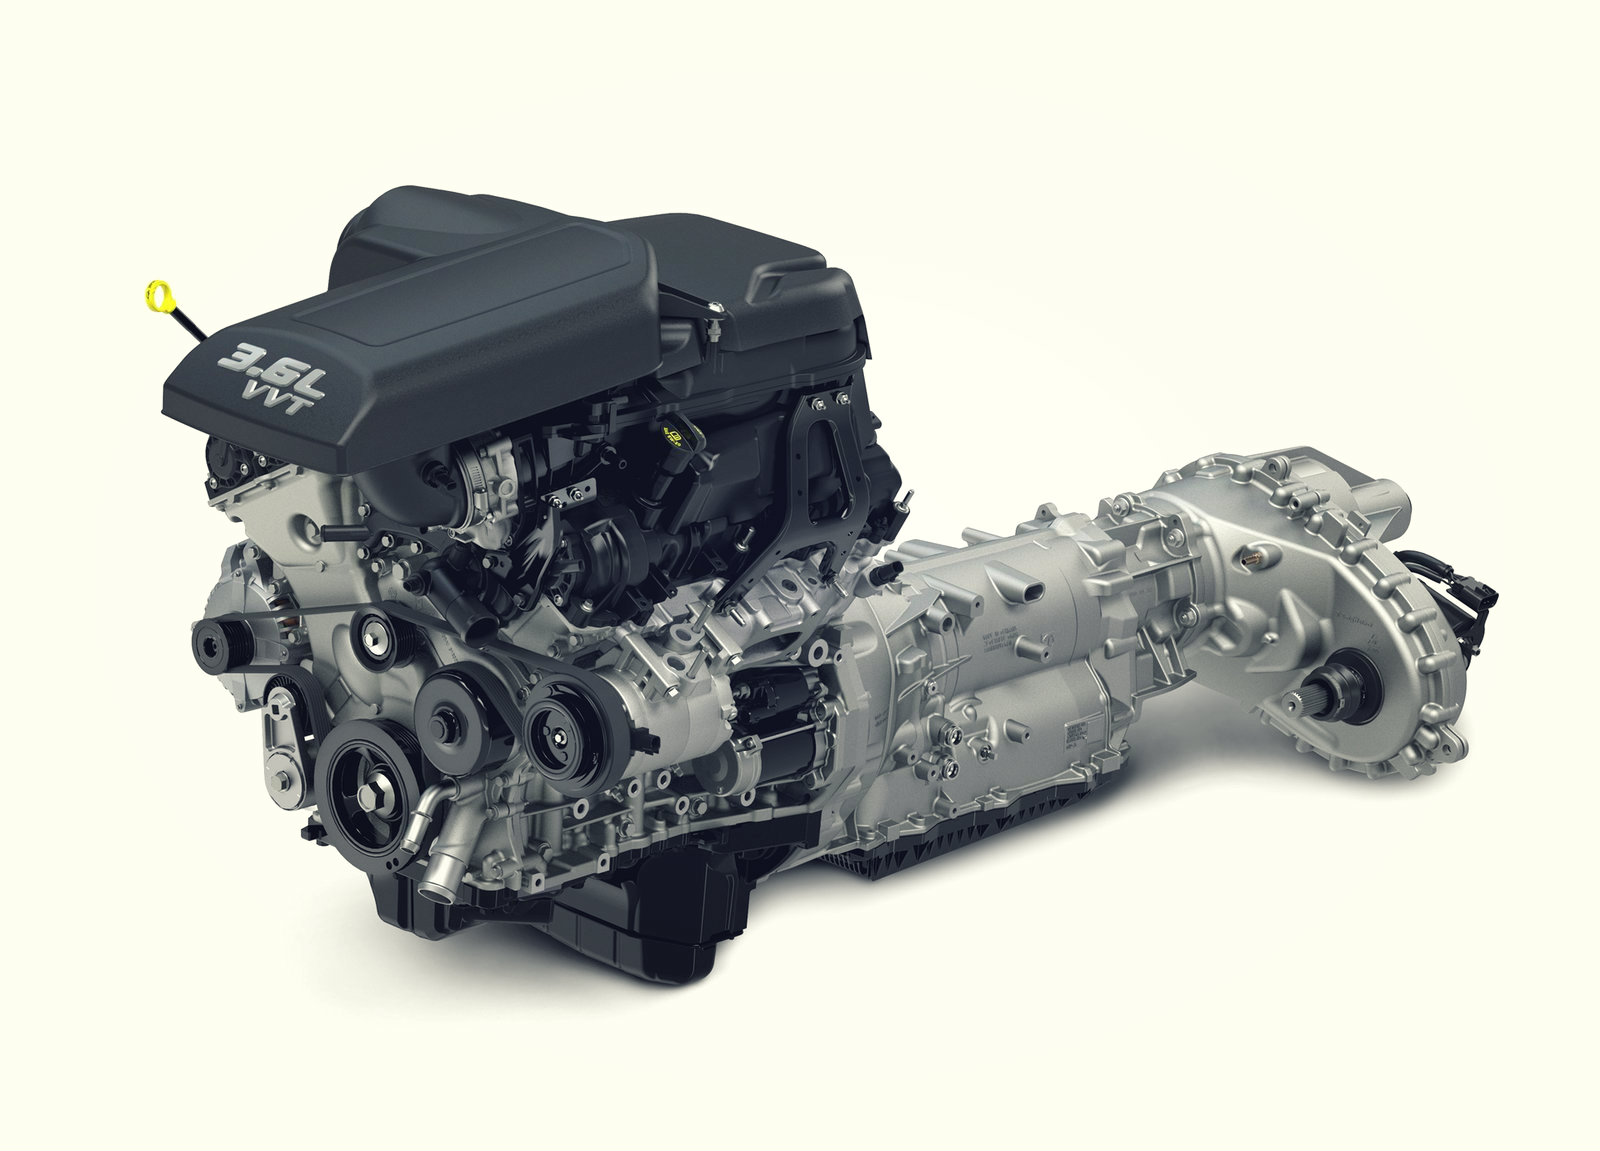 Pentastar V6 Still Prone to Cylinder Head Failure